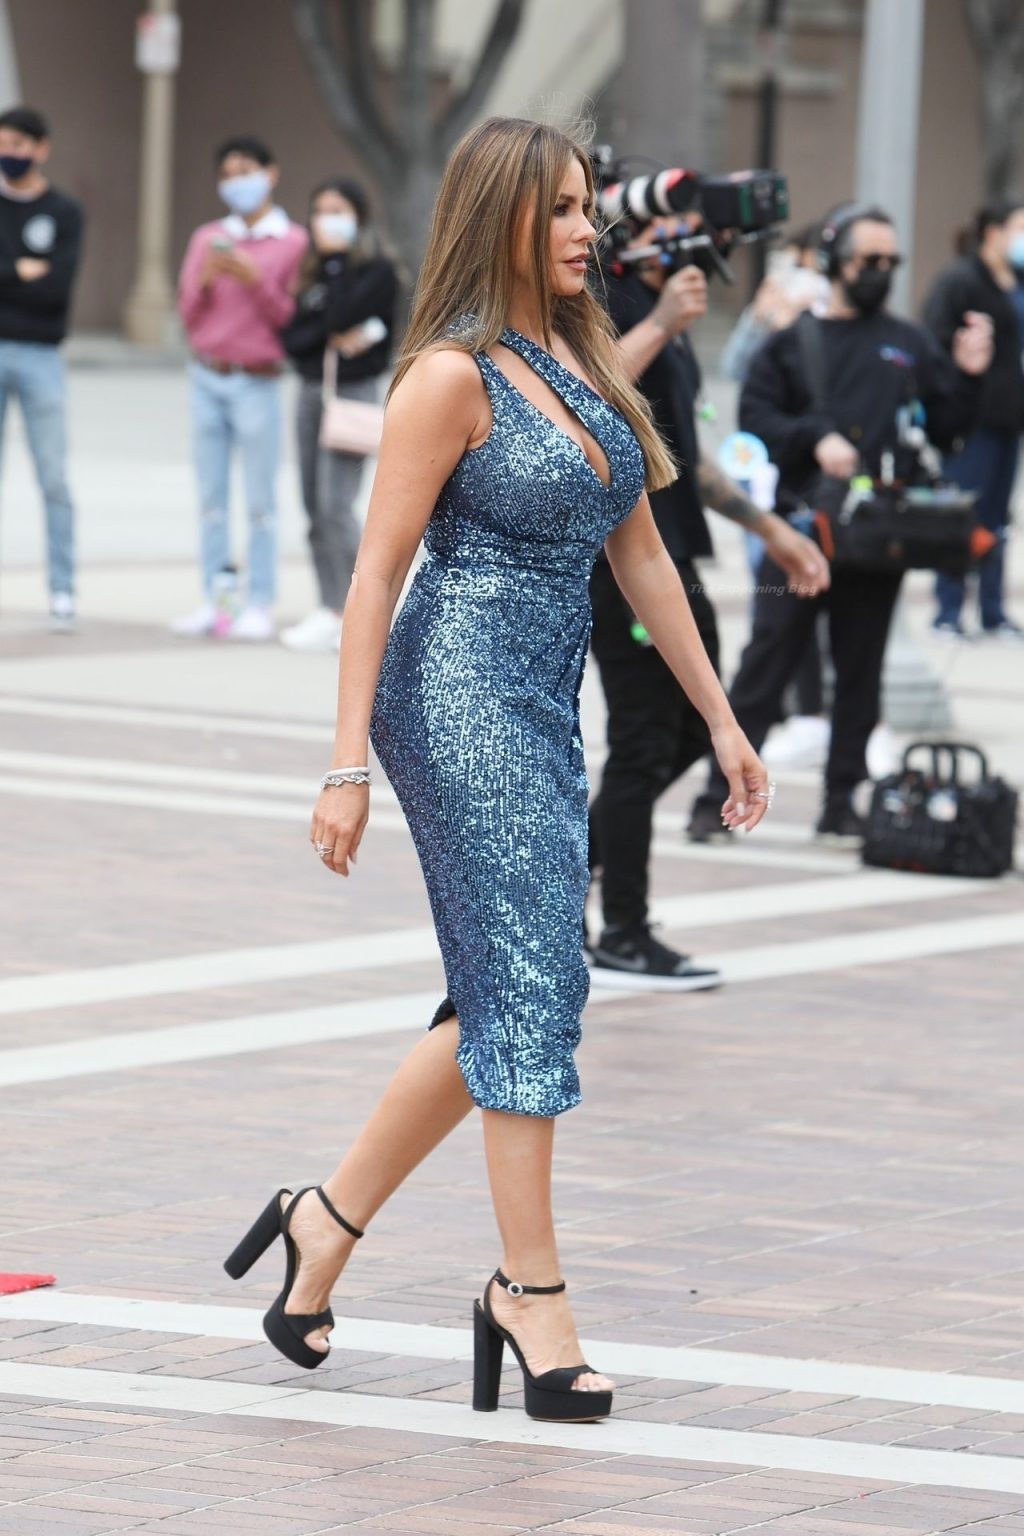 Sofia Vergara is Seen Taping on a Bus for AGT (60 Photos)